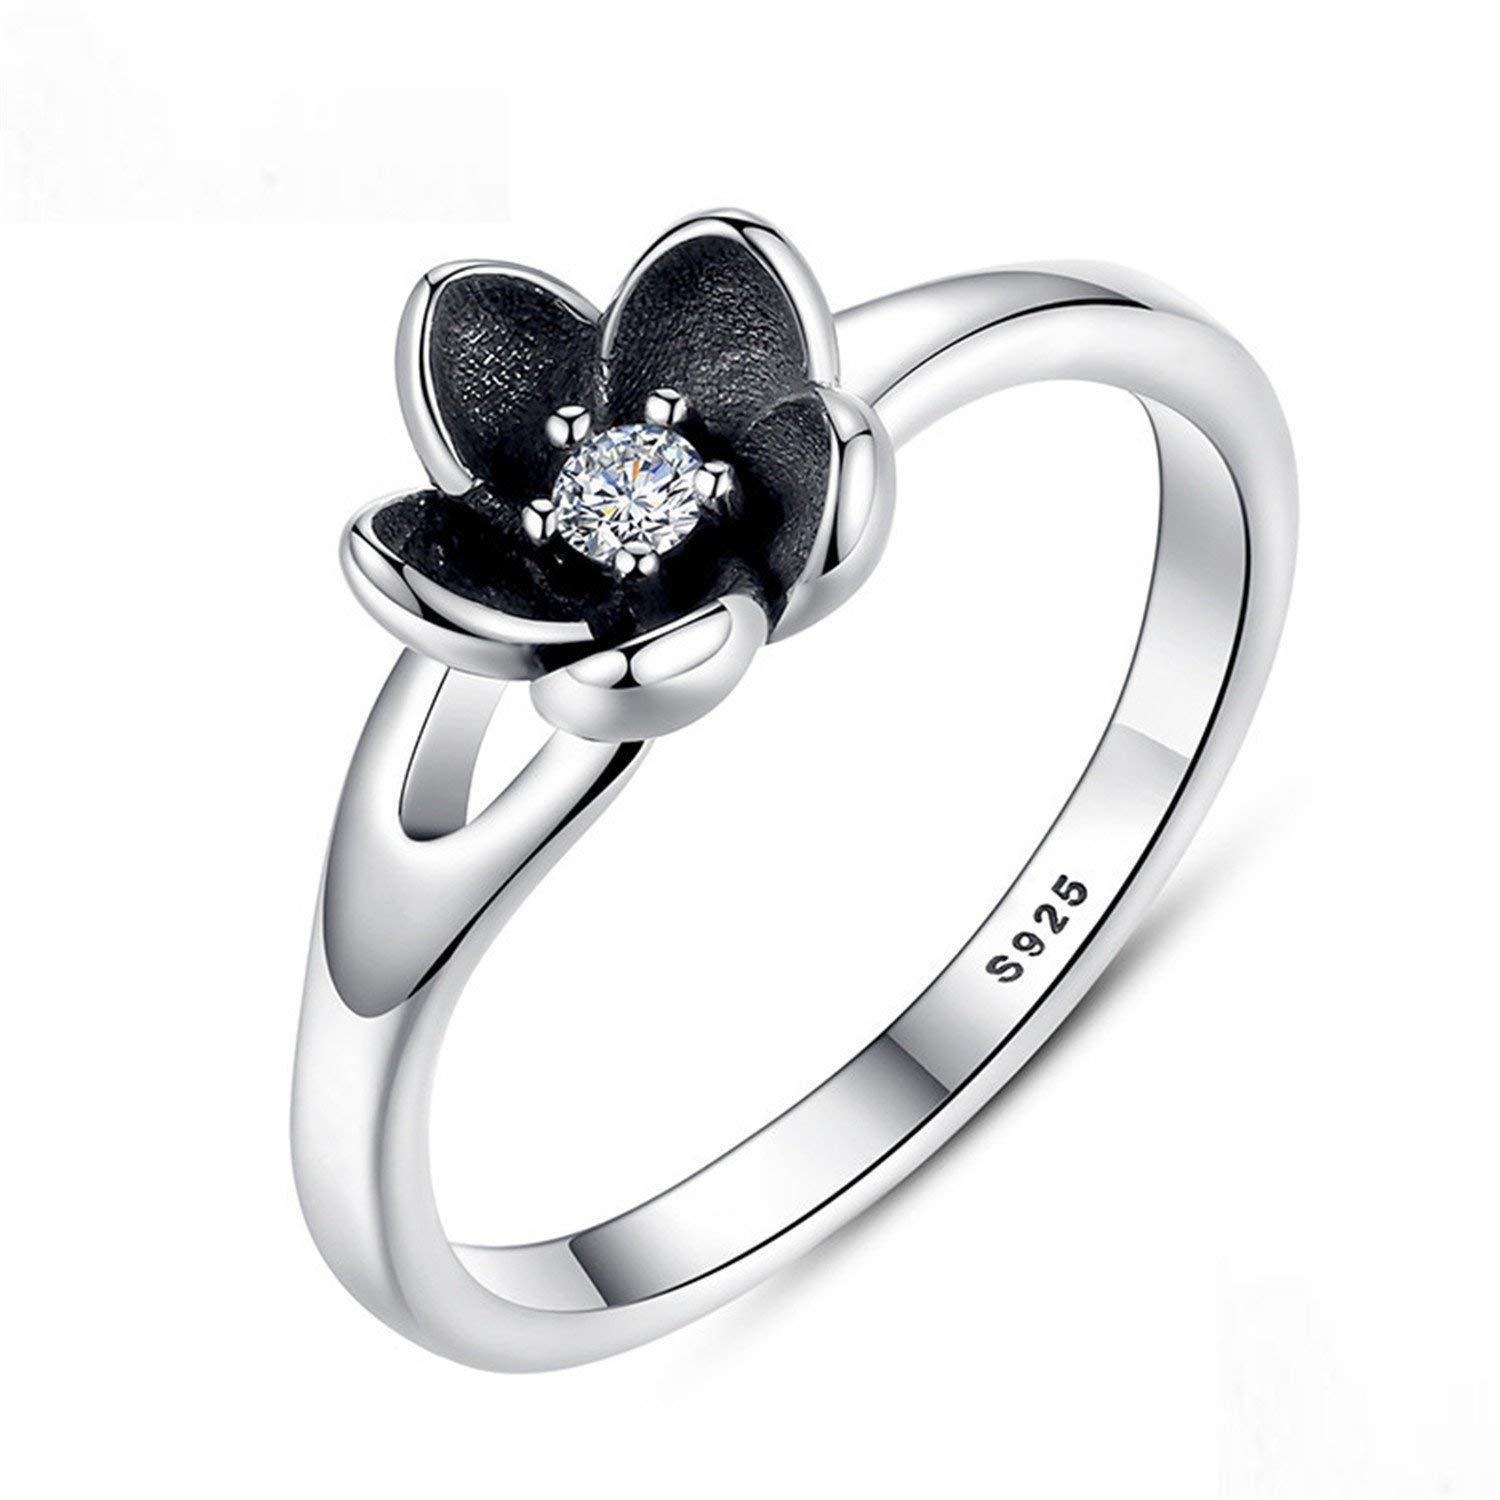 Baqijian Collection Authentic Floral Flower Stackable Ring Black Enamel Sterling Jewelry Pa7154